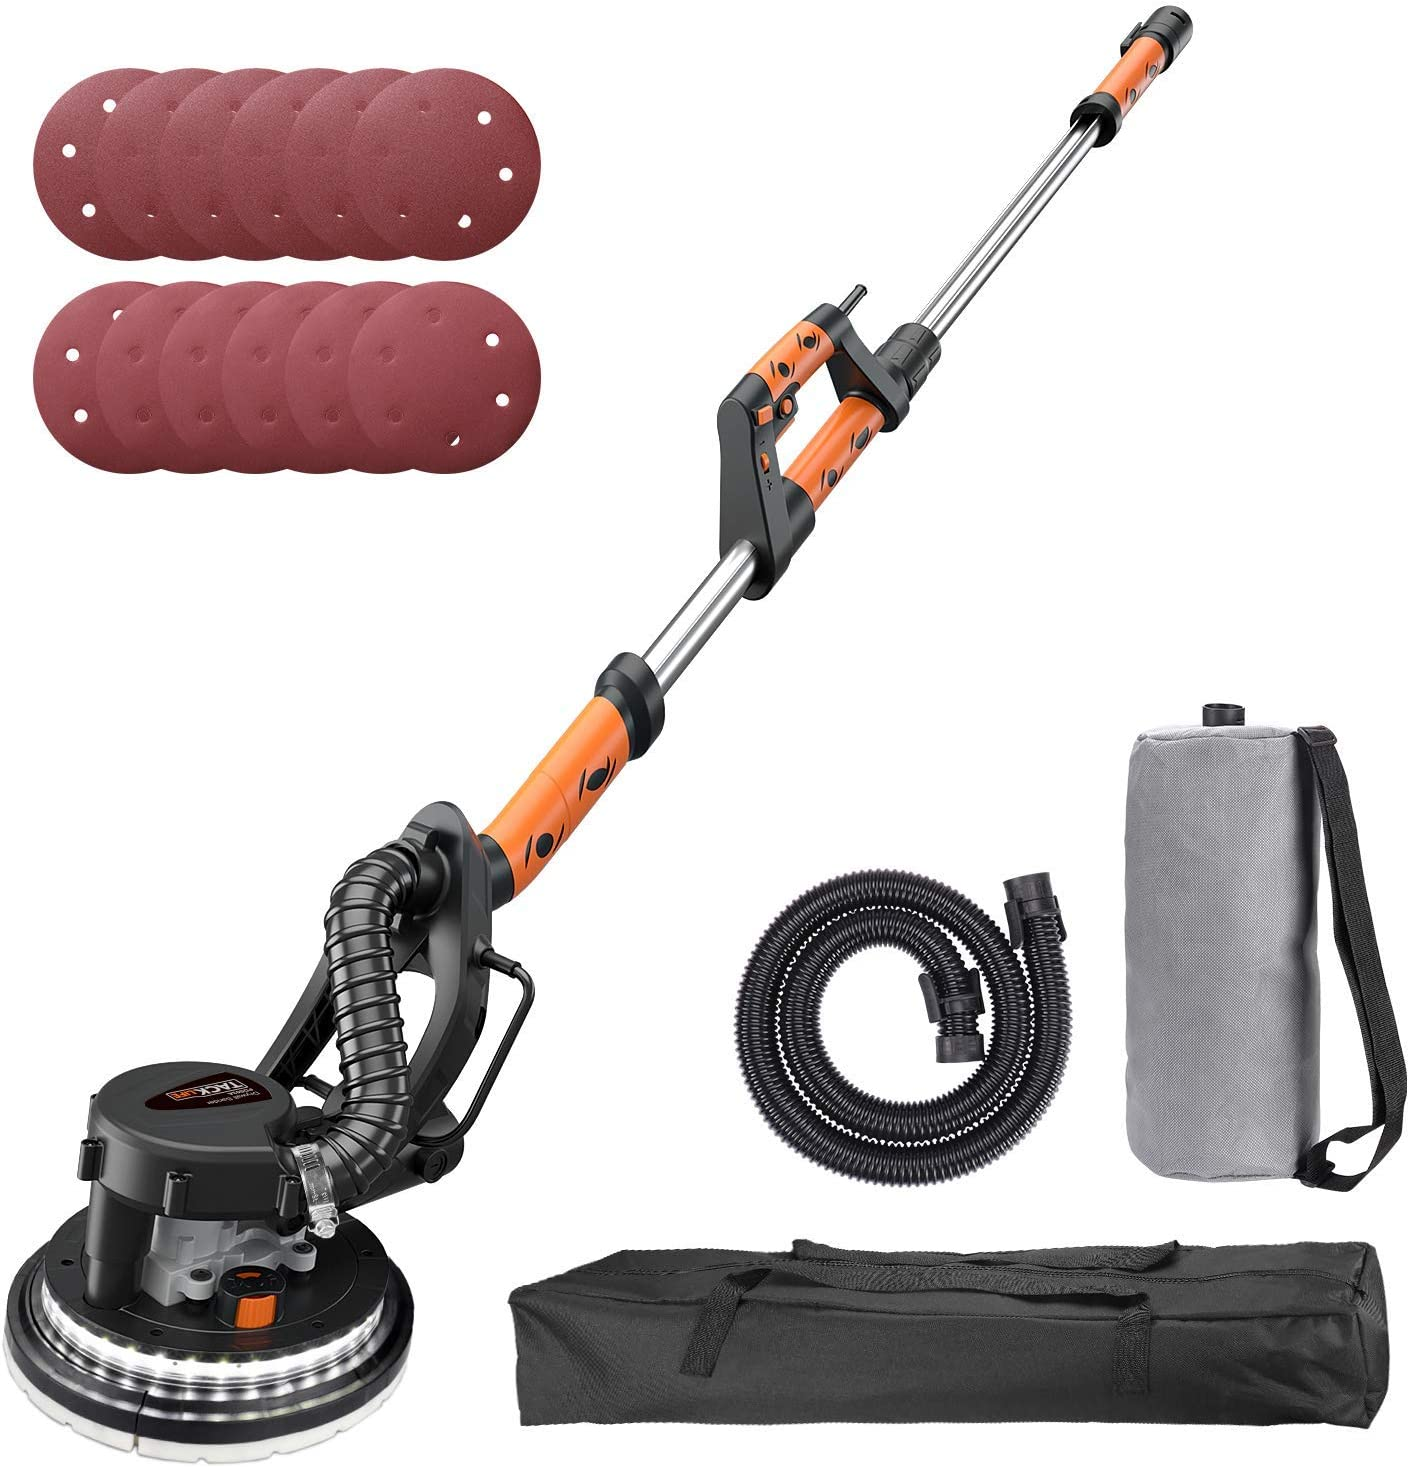 TACKLIFE Drywall Sander, 6.7A 800W , Automatic Vacuum System, 12 Sanding Discs, Variable Speed 500-1800 RPM Electric Drywall Sander with LED Light and a Carry Bag, Extendable Handle 1.6-1.9m PDS03A